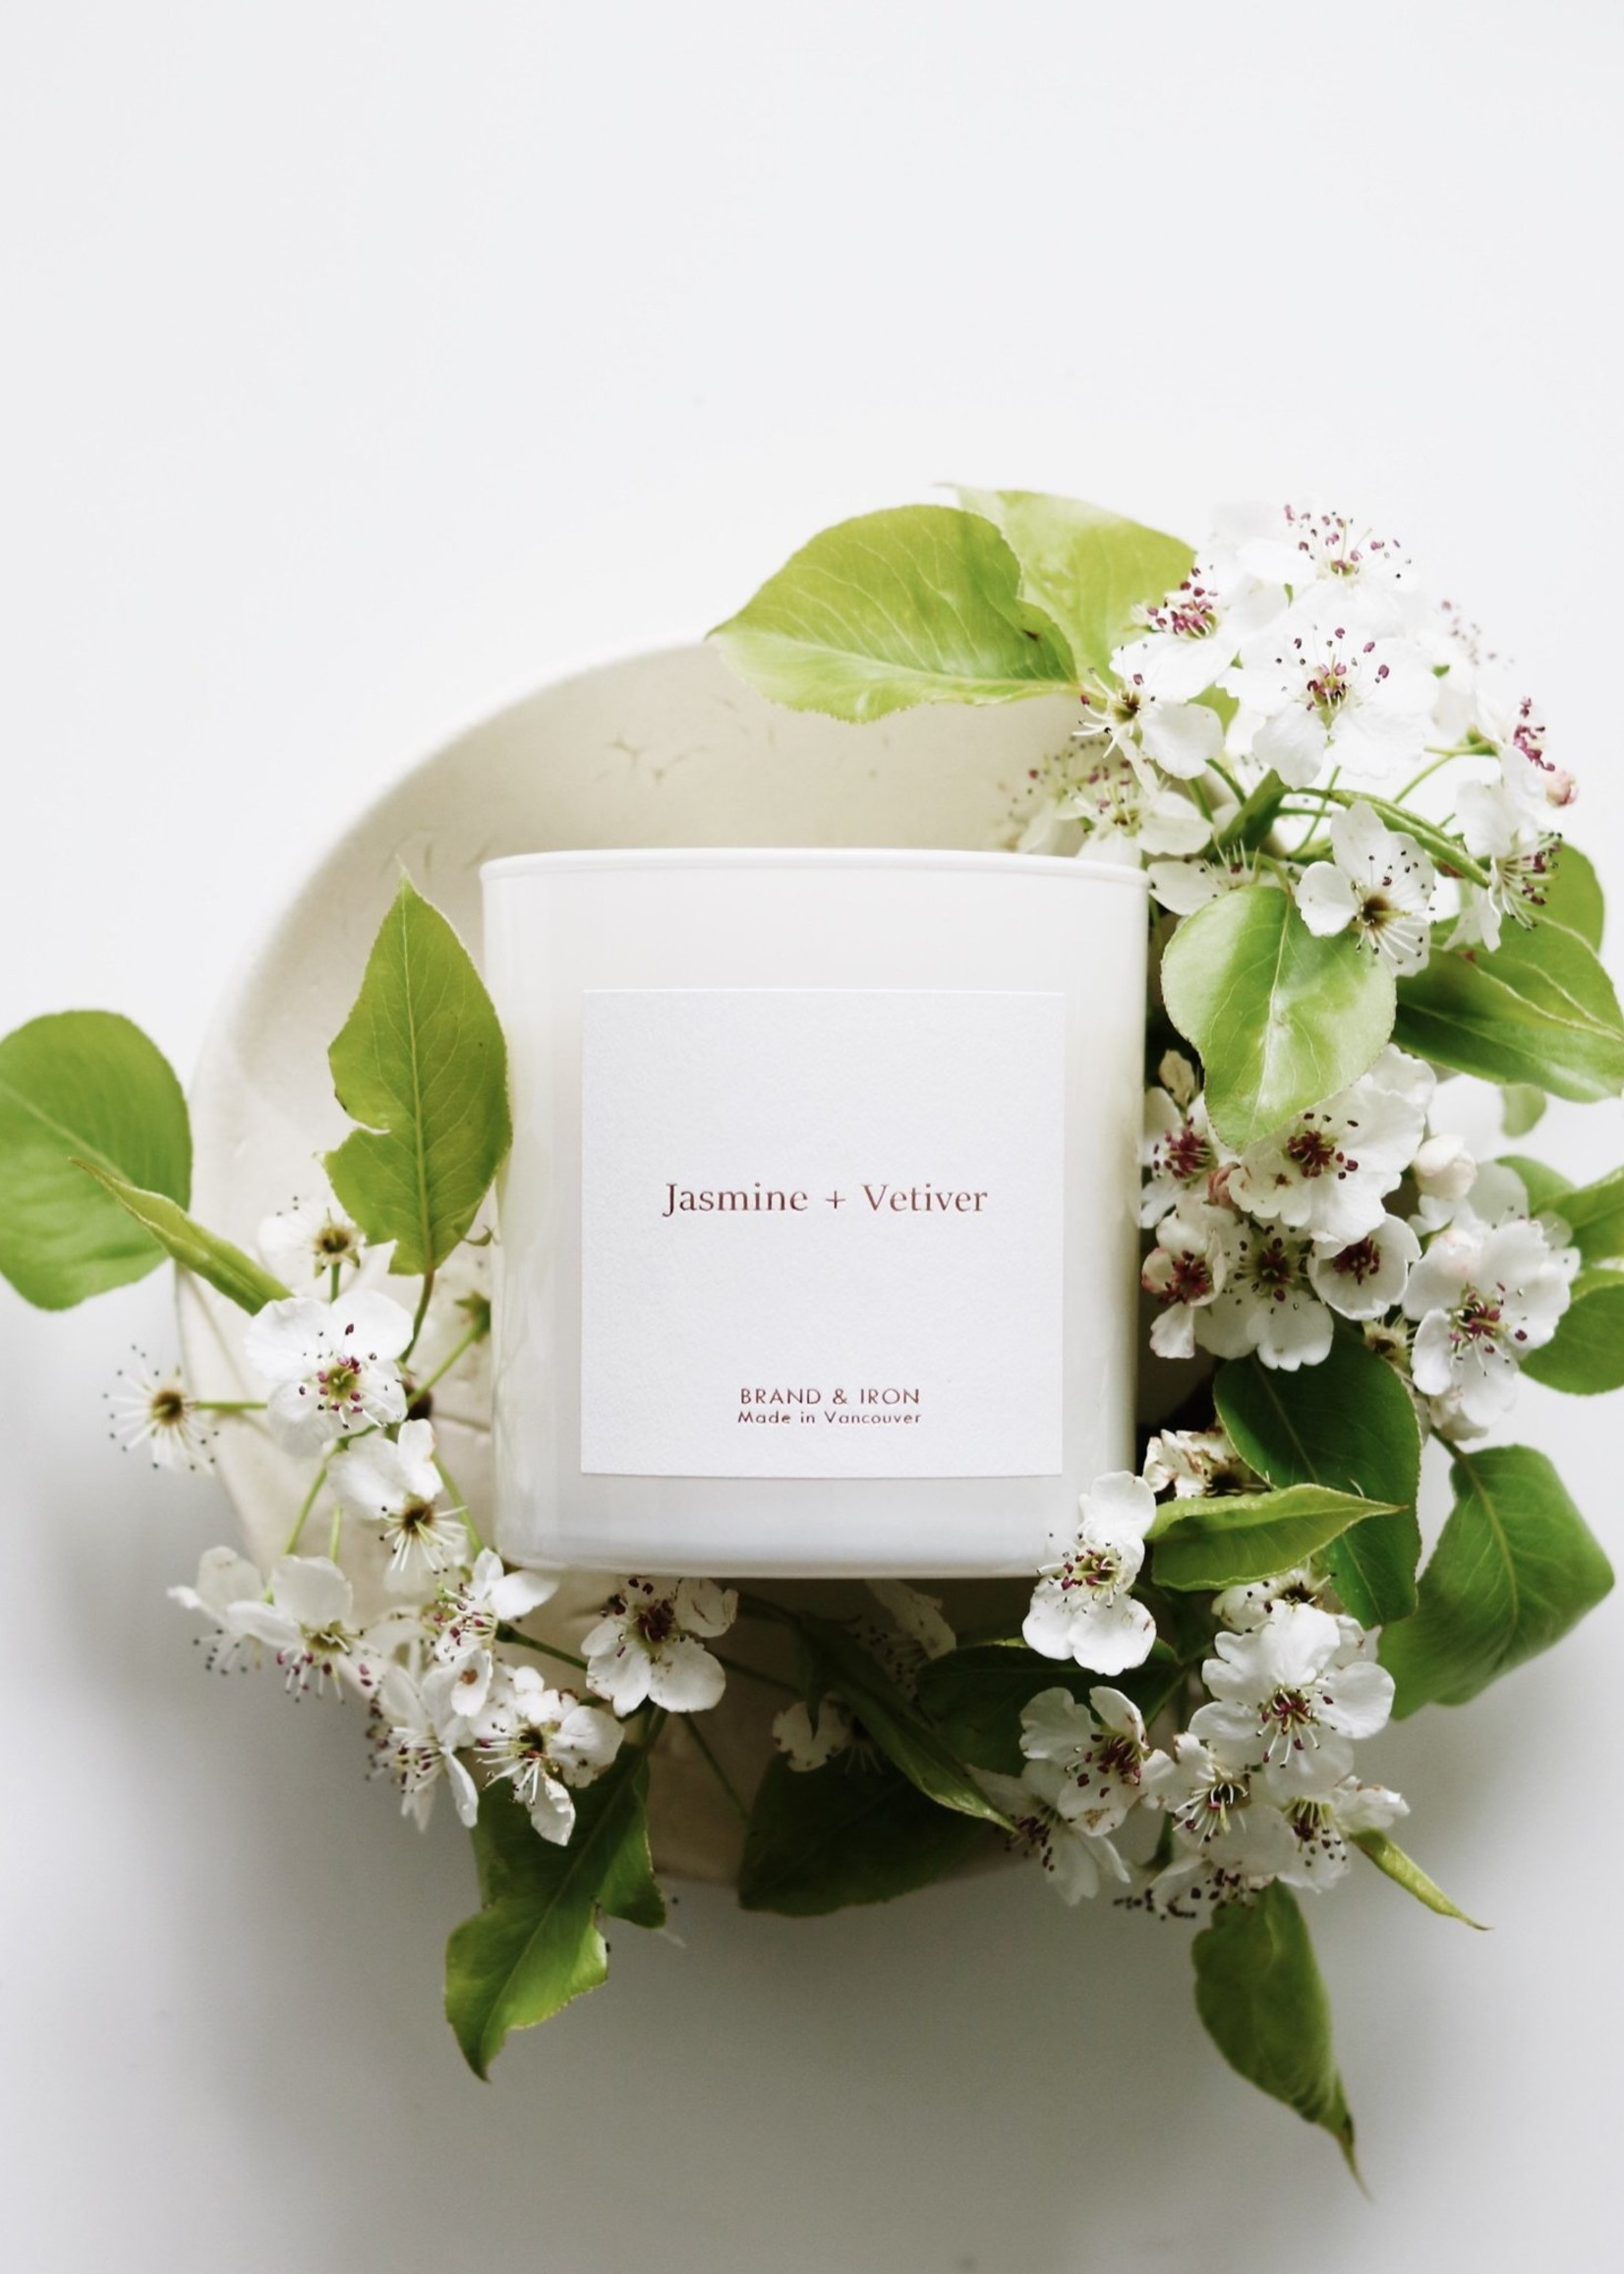 Brand & Iron Brand & Iron Home Series Jasmine and Vetiver Candle